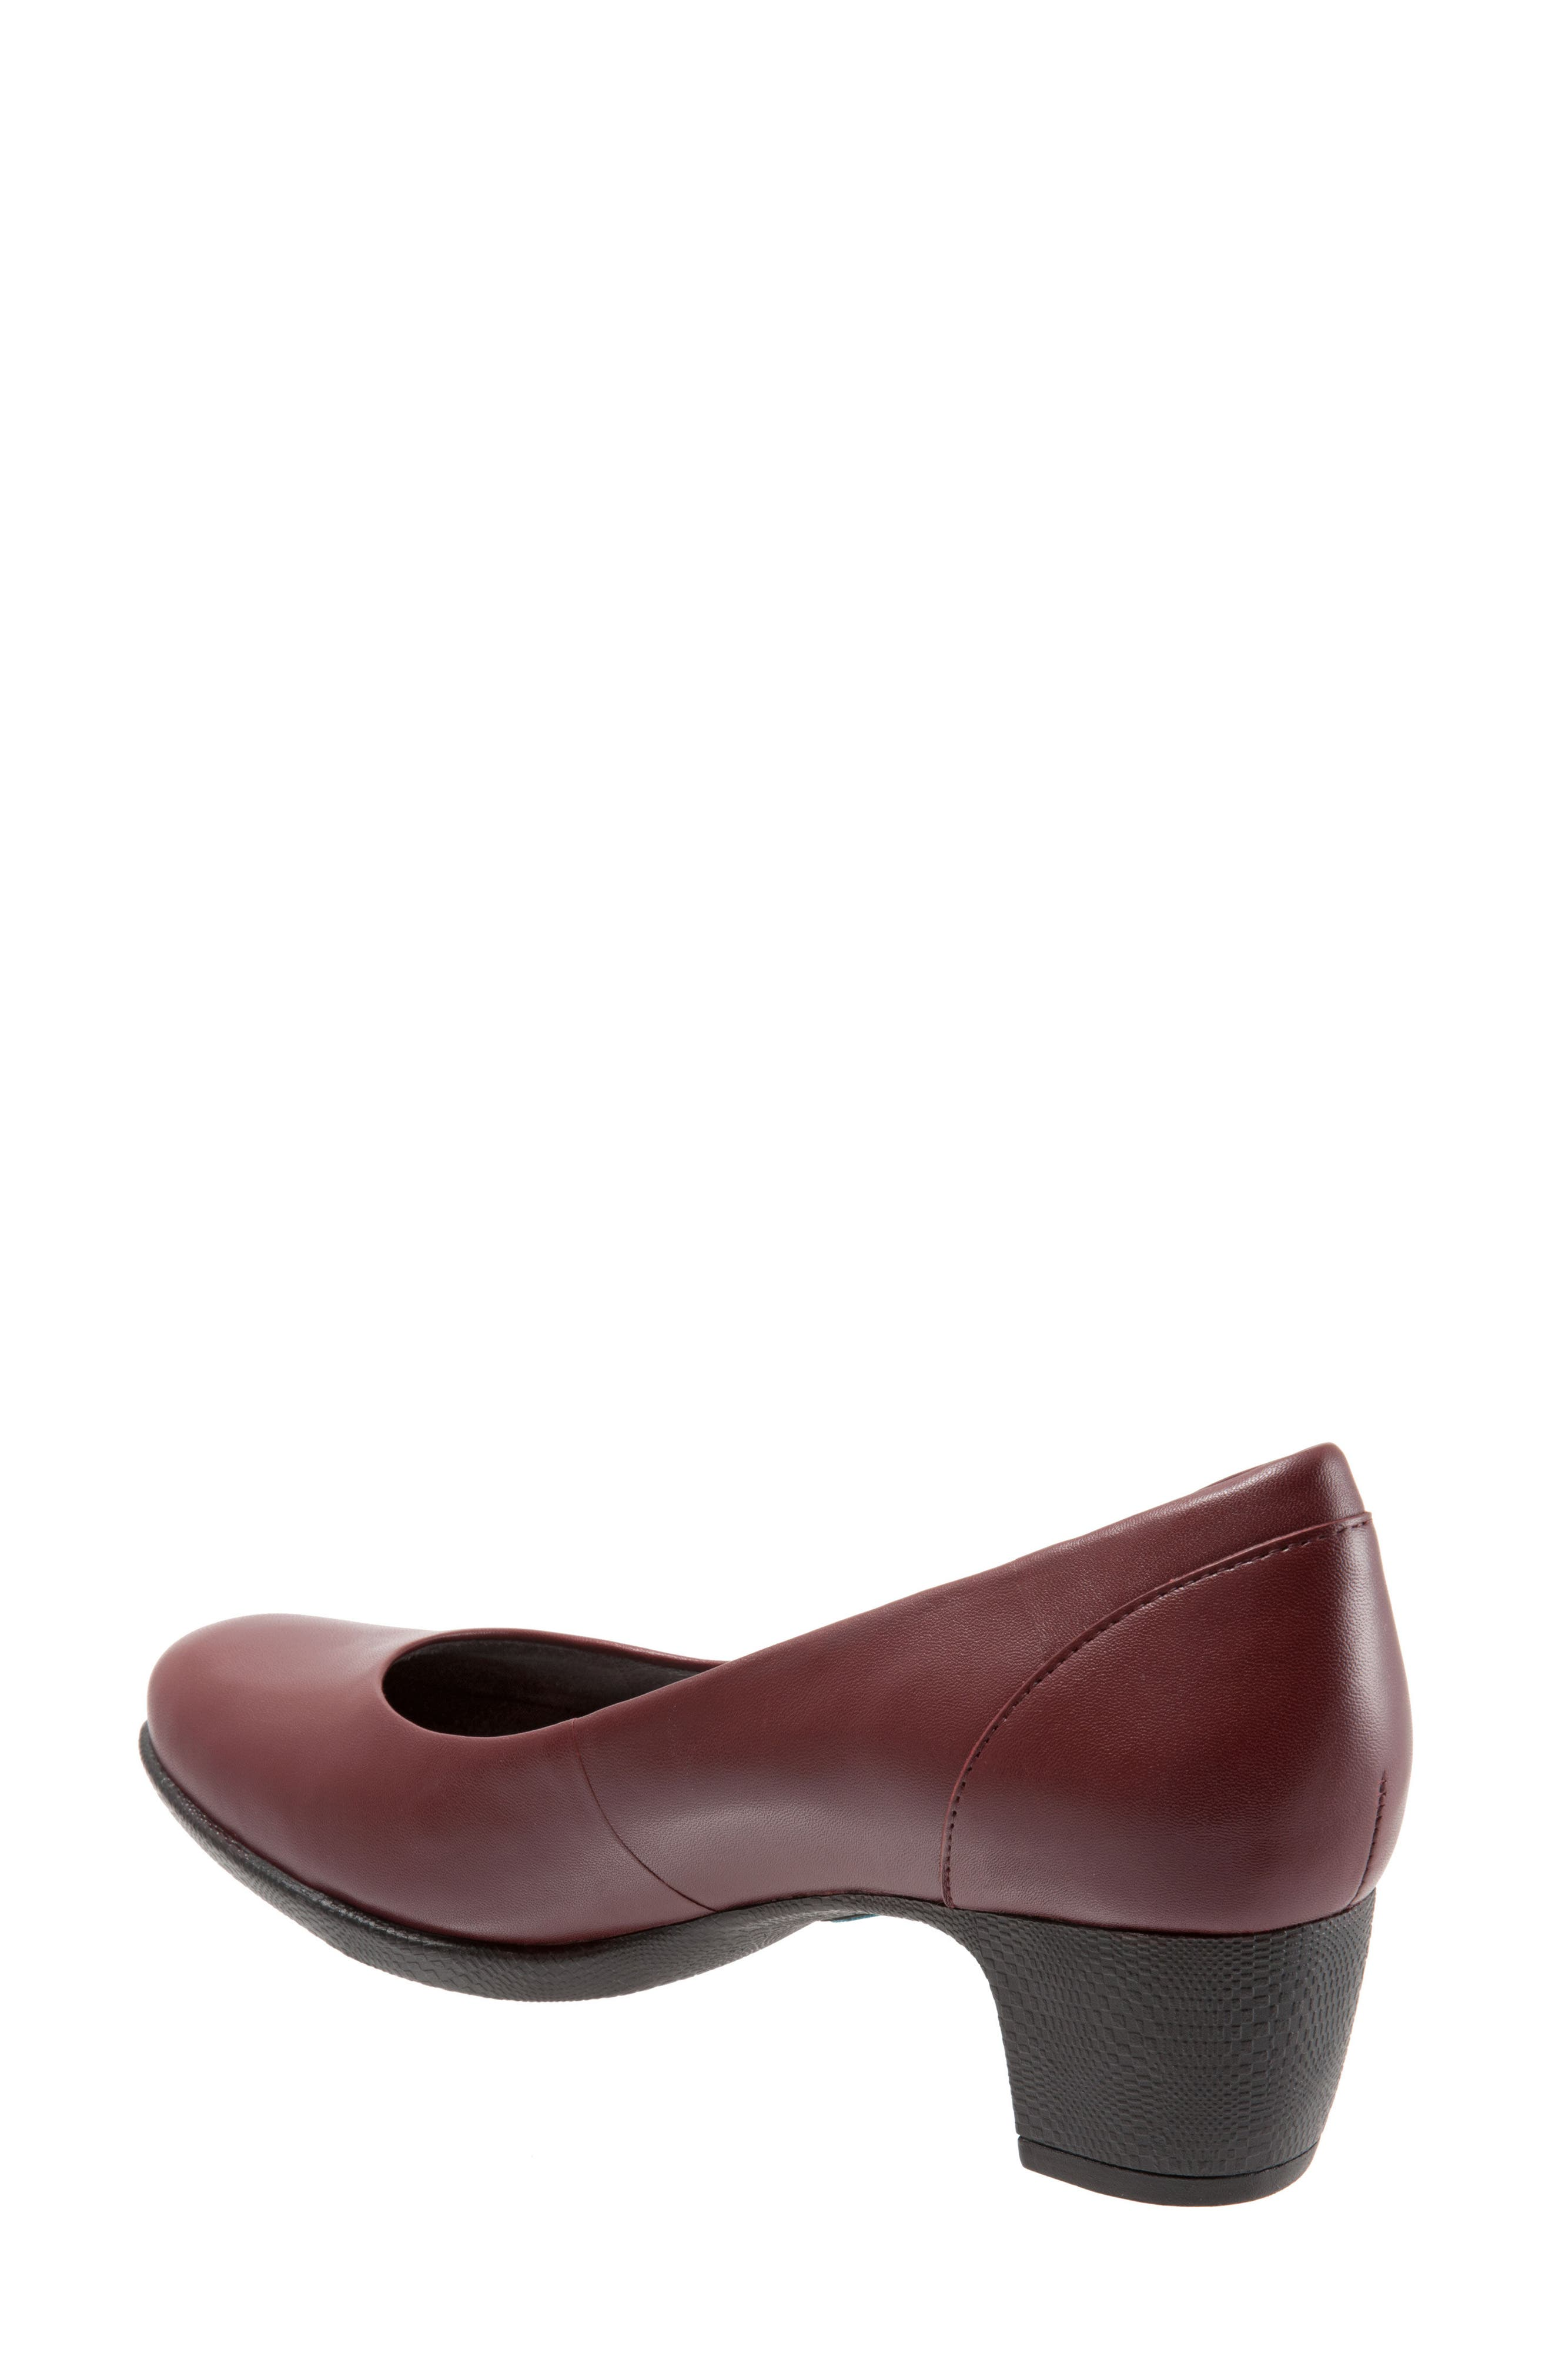 Imperial II Pump,                             Alternate thumbnail 3, color,                             Dark Red Leather